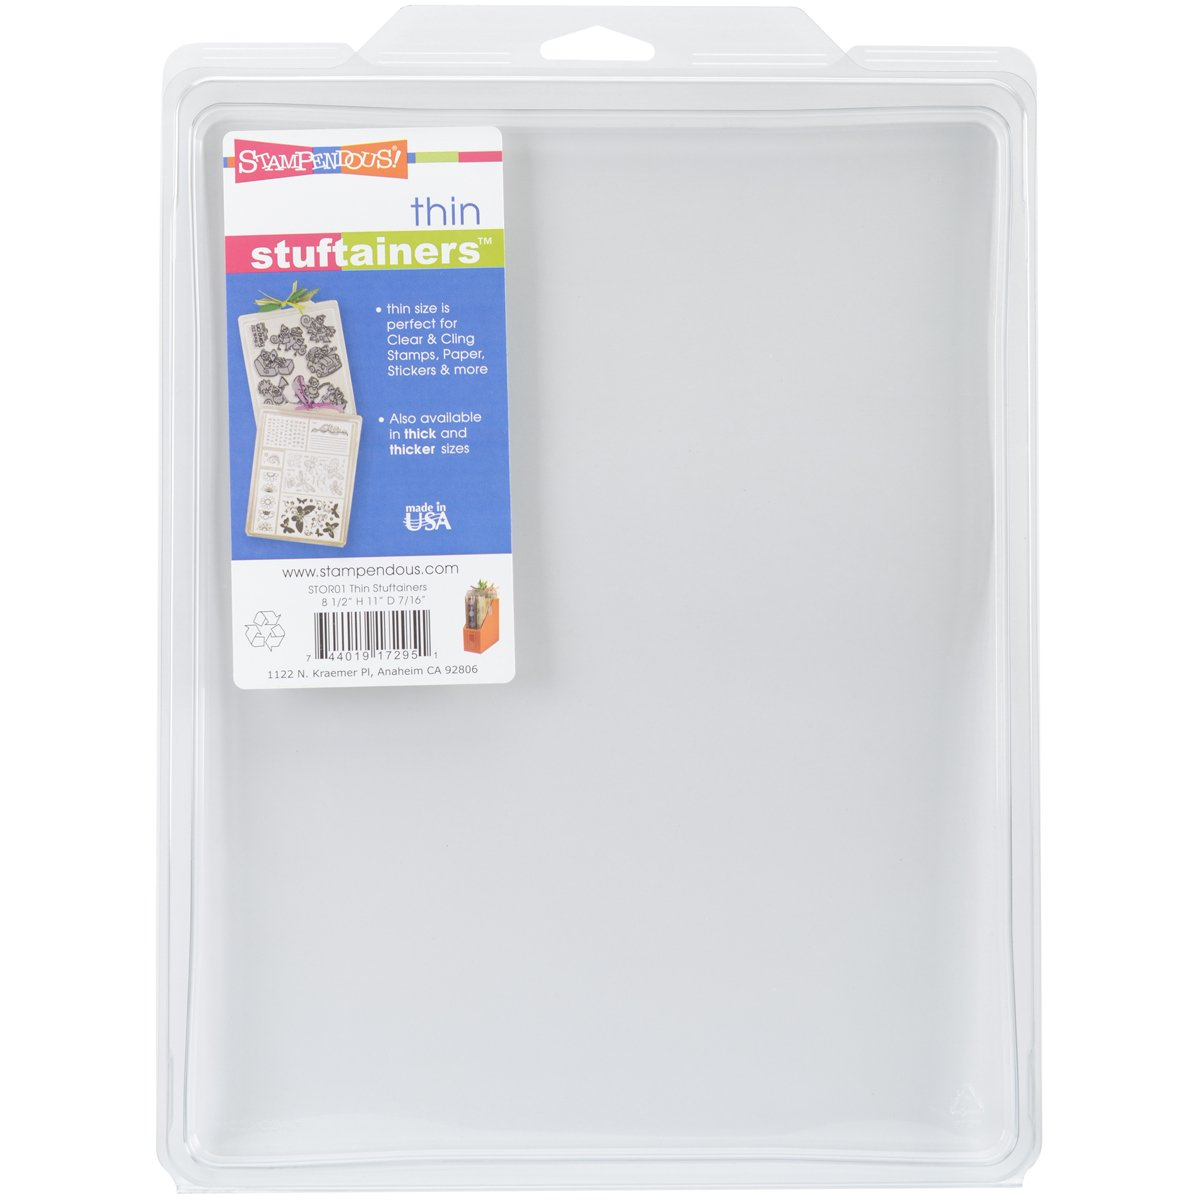 Stampendous Thin Storage Solutions, 8-1/2-Inch by 11-Inch by 0.44-Inch Notions - In Network STOR01